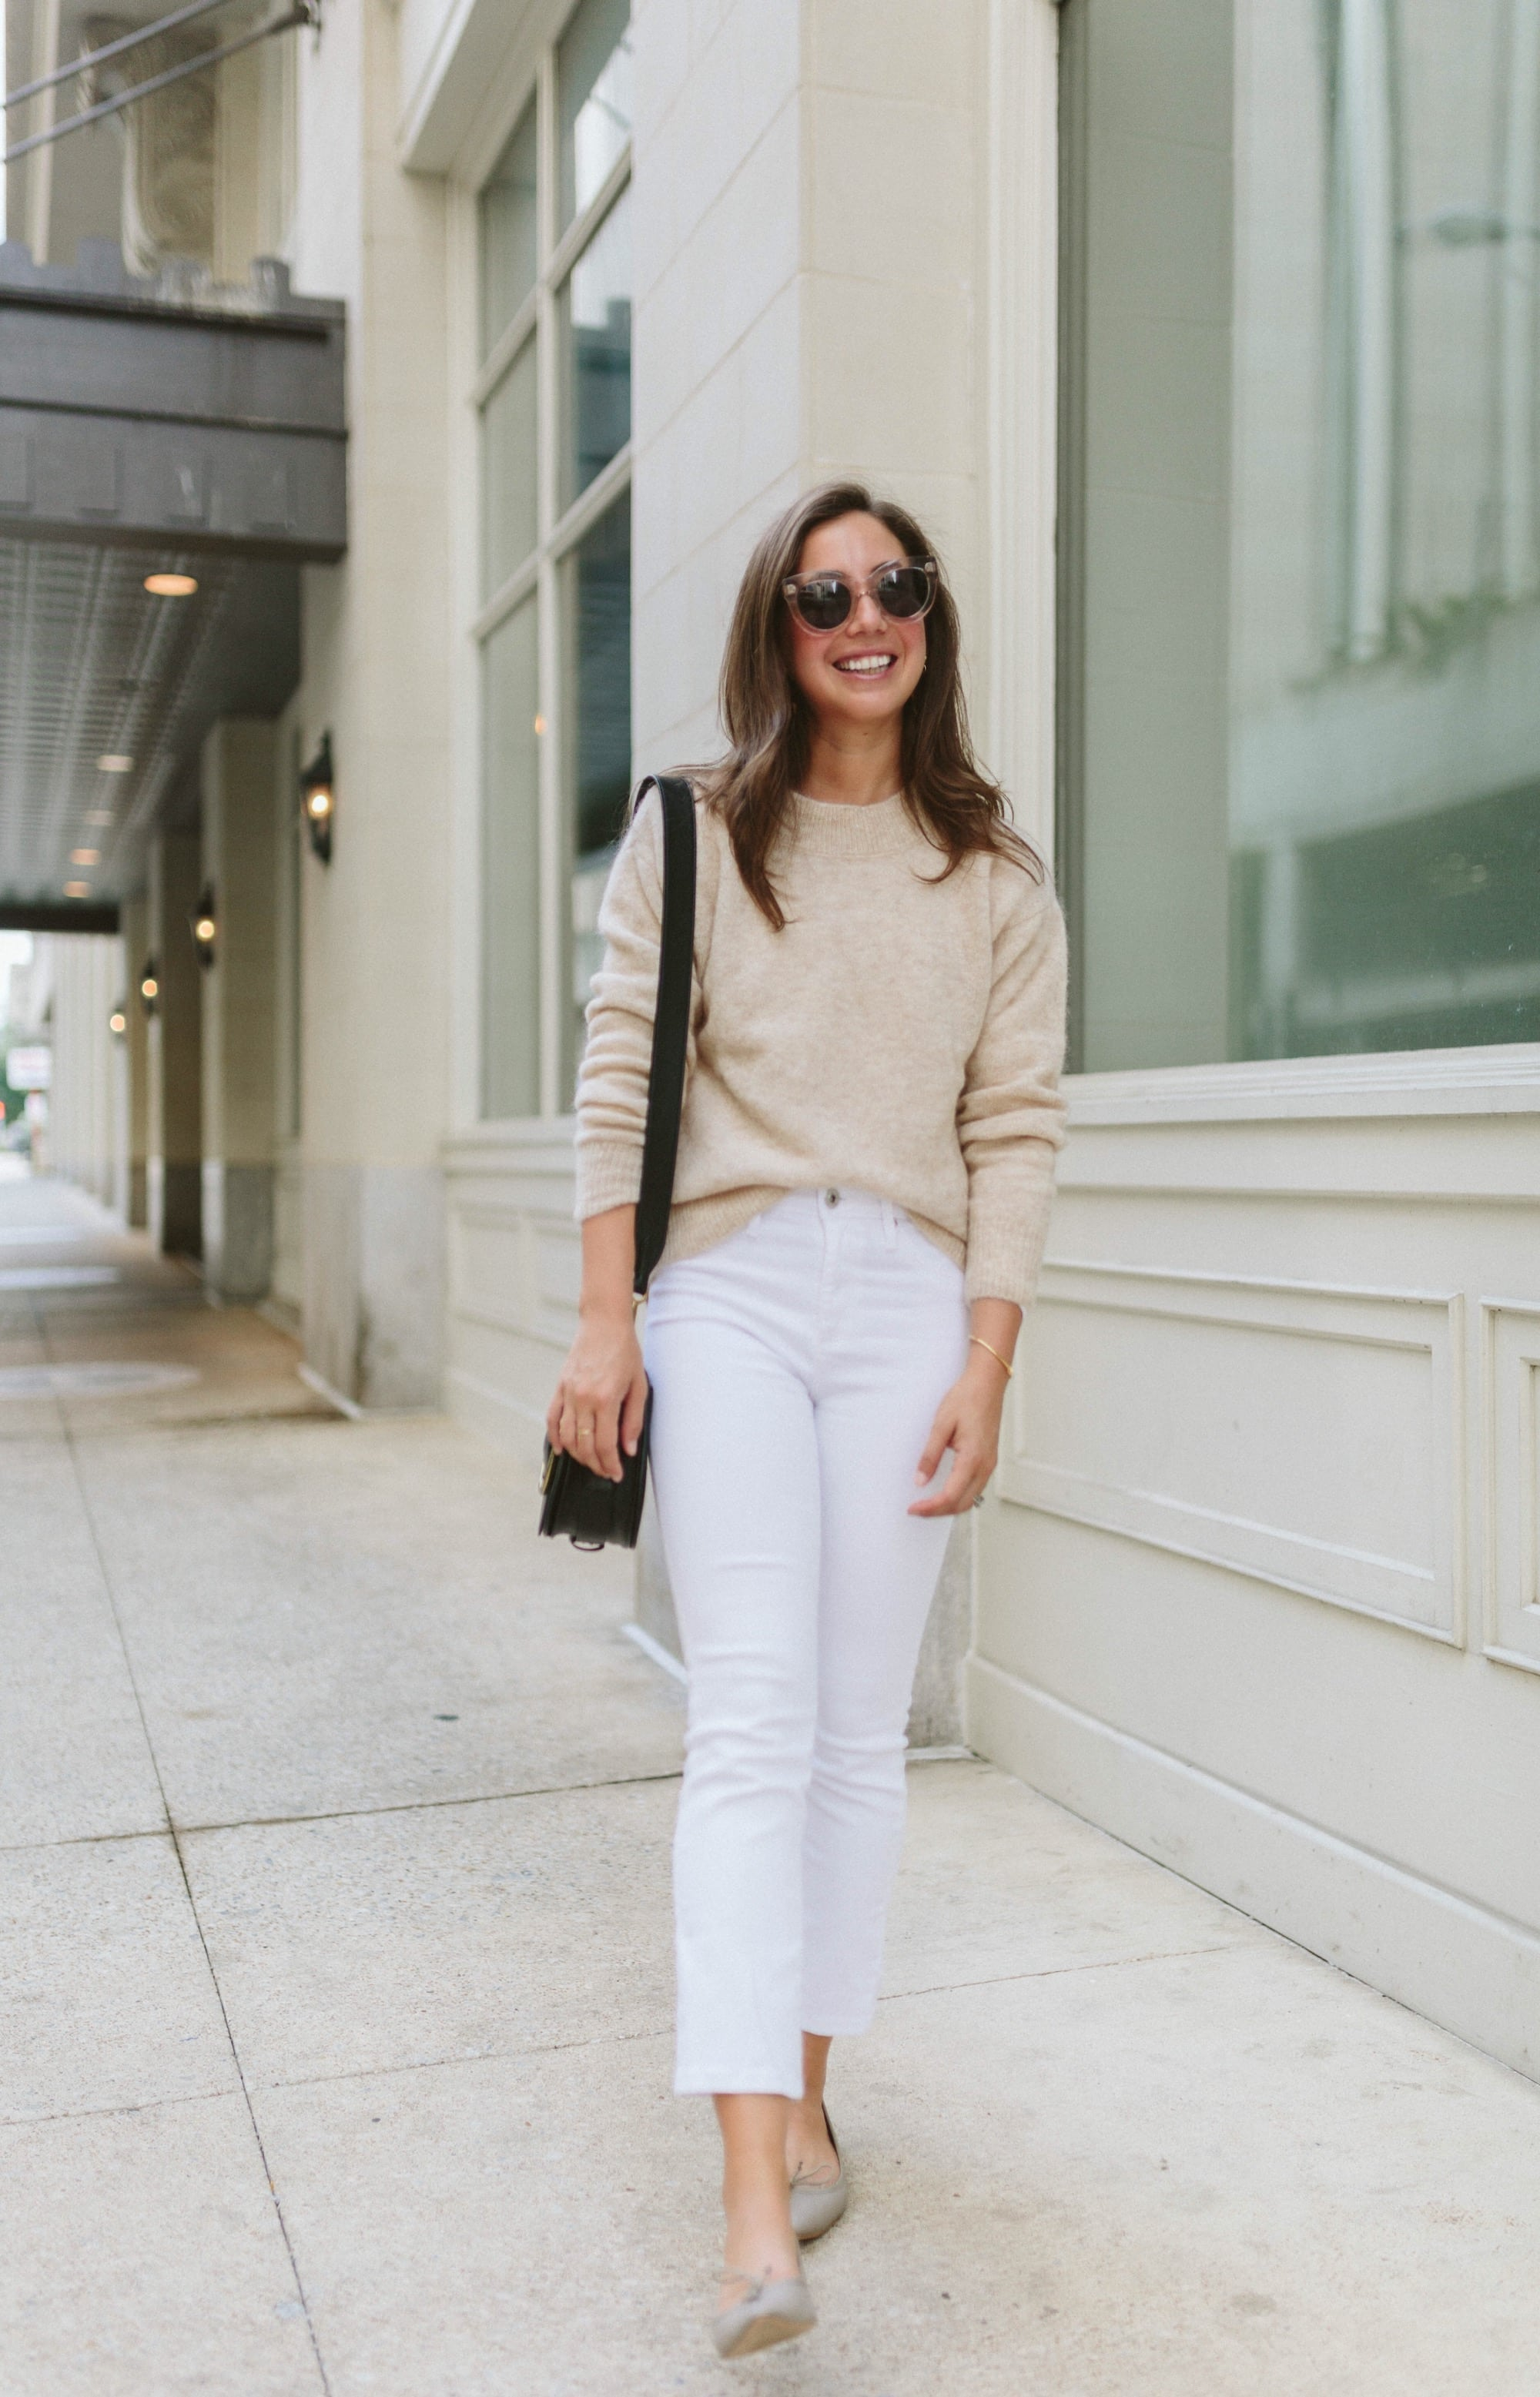 Beige Sweater and White Jeans